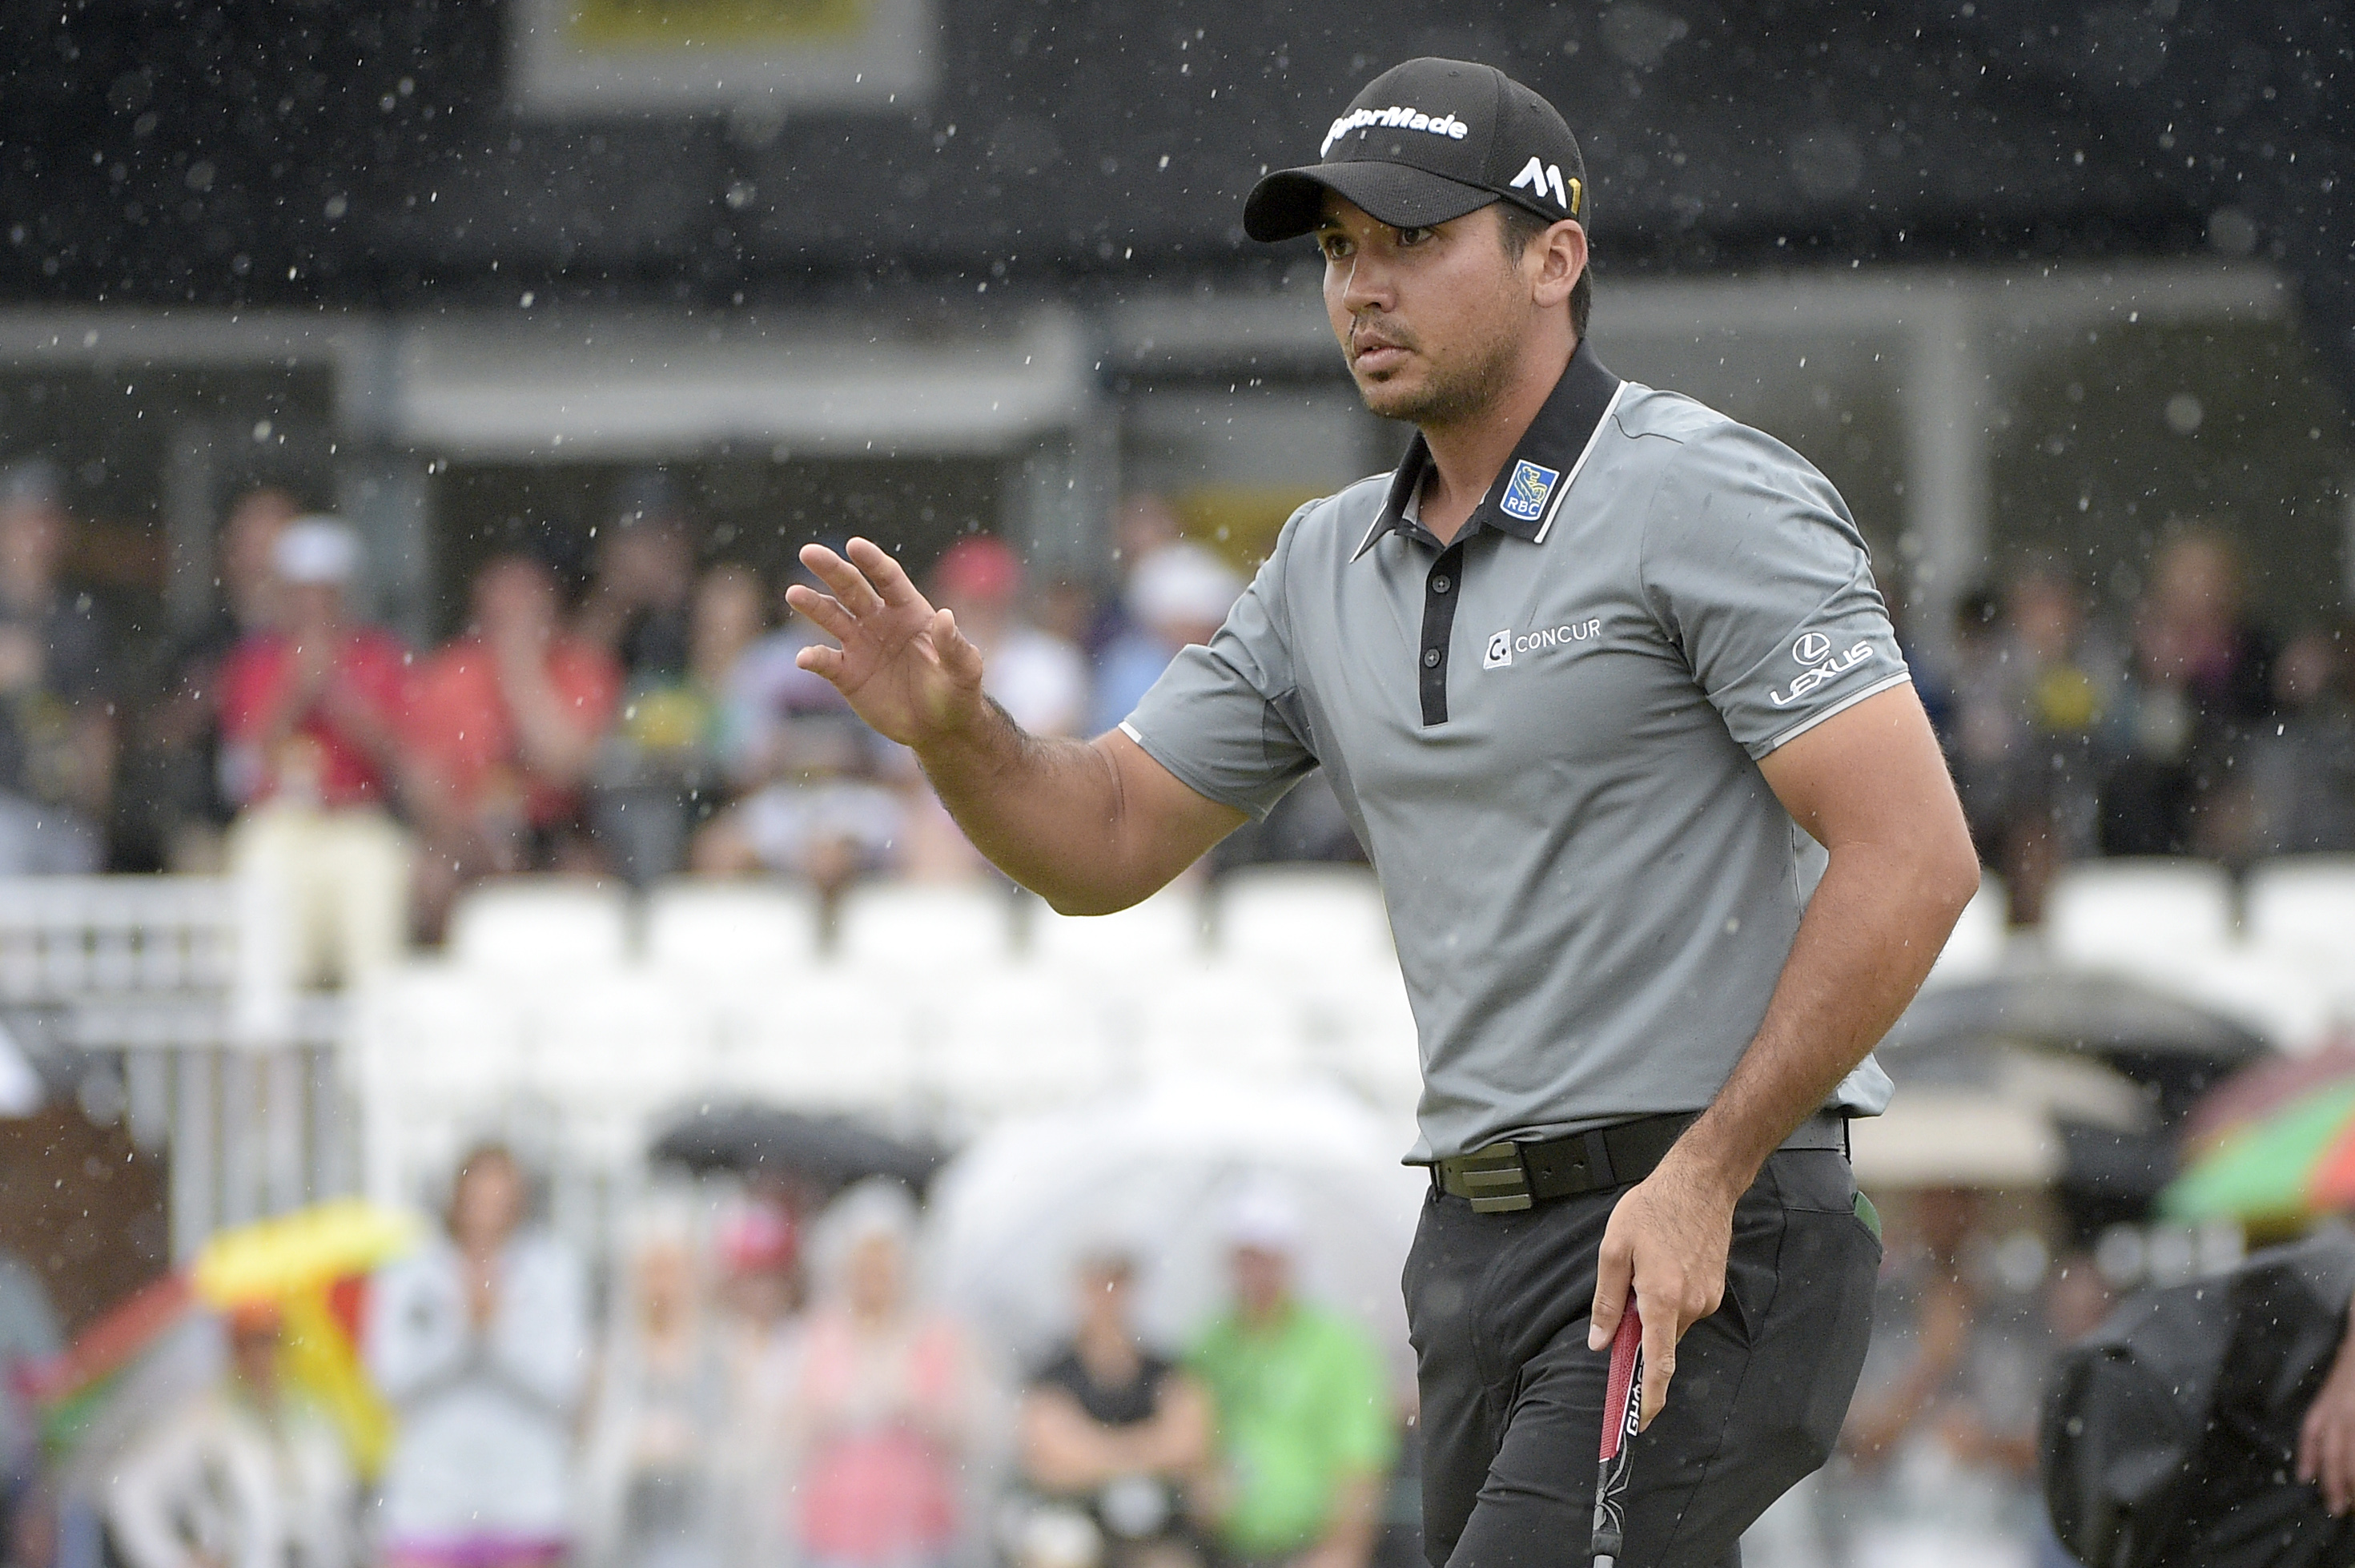 Jason Day, of Australia, acknowledges the crowd after making his putt on the ninth green during the third round of the Arnold Palmer Invitational golf tournament in Orlando, Fla., Saturday, March 19, 2016. (AP Photo/Phelan M. Ebenhack)